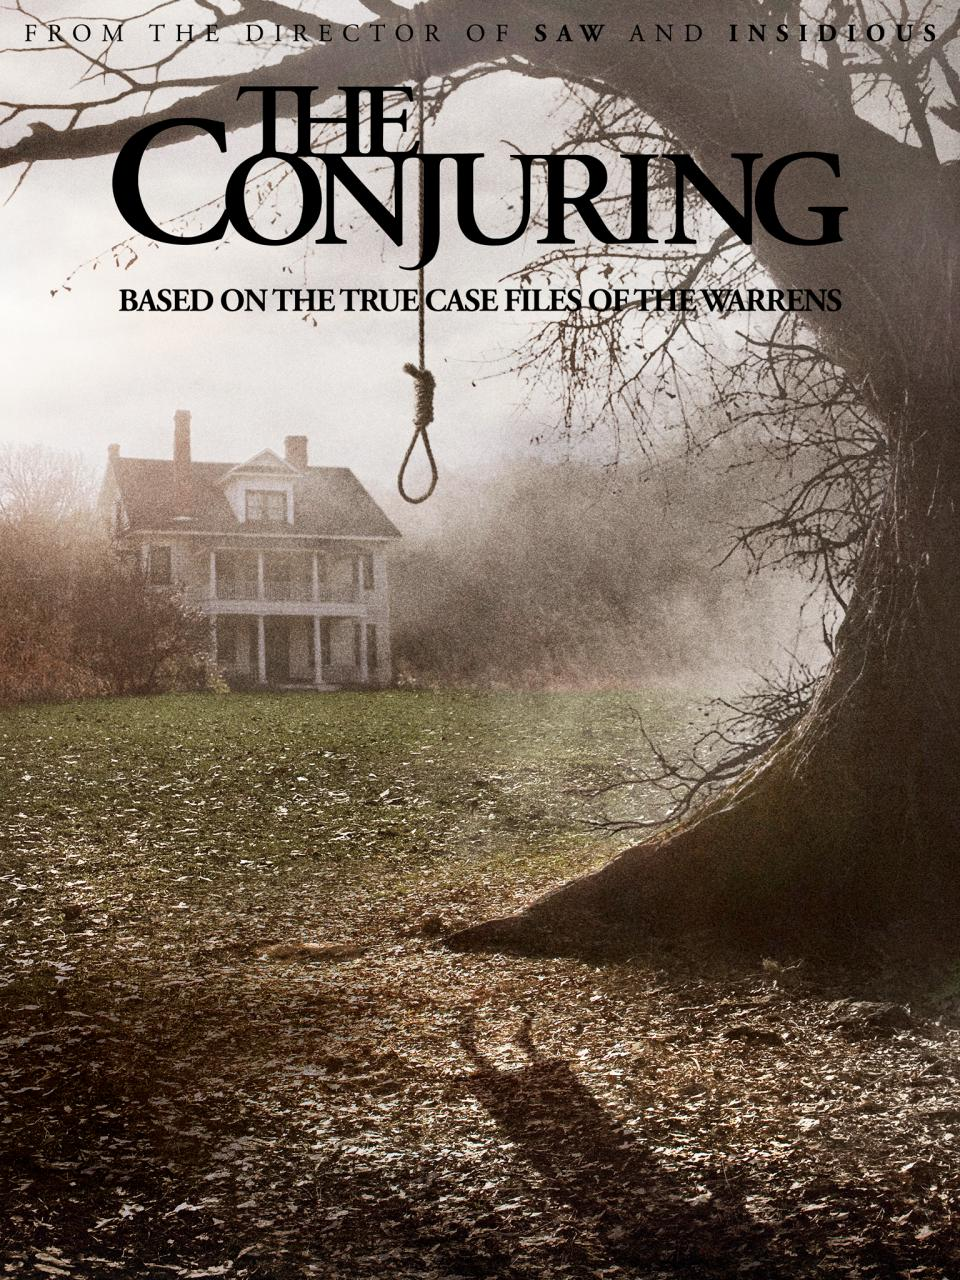 The-Conjuring-Poster.jpg